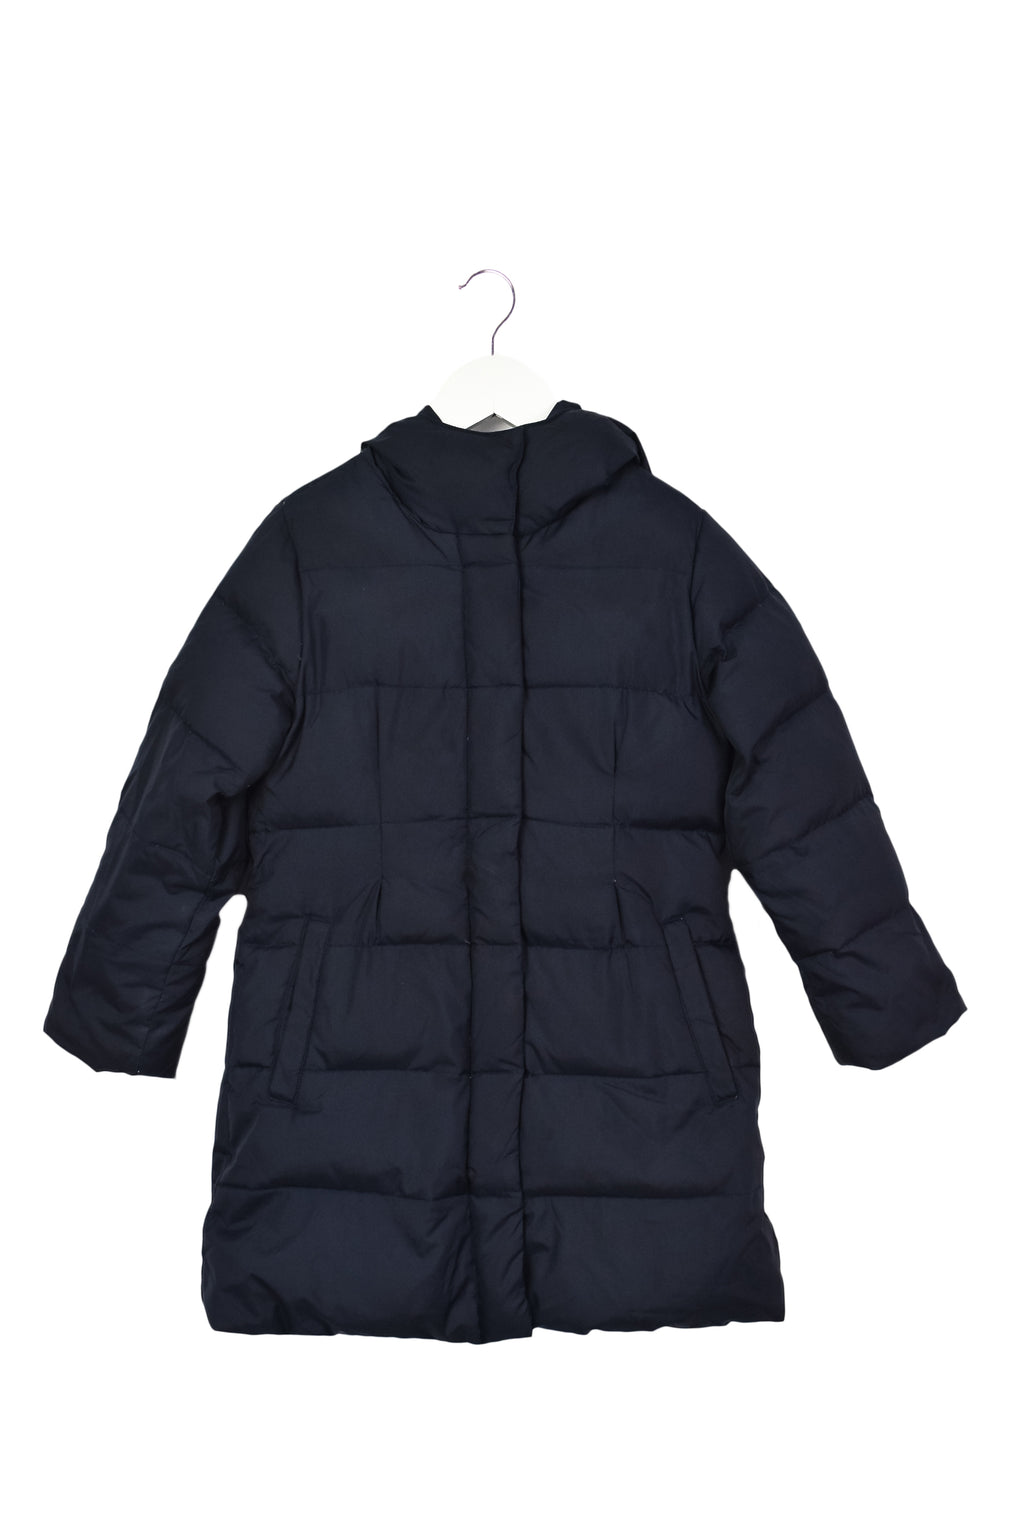 10037995 Crewcuts Kids~Puffer Coat 4-5T at Retykle